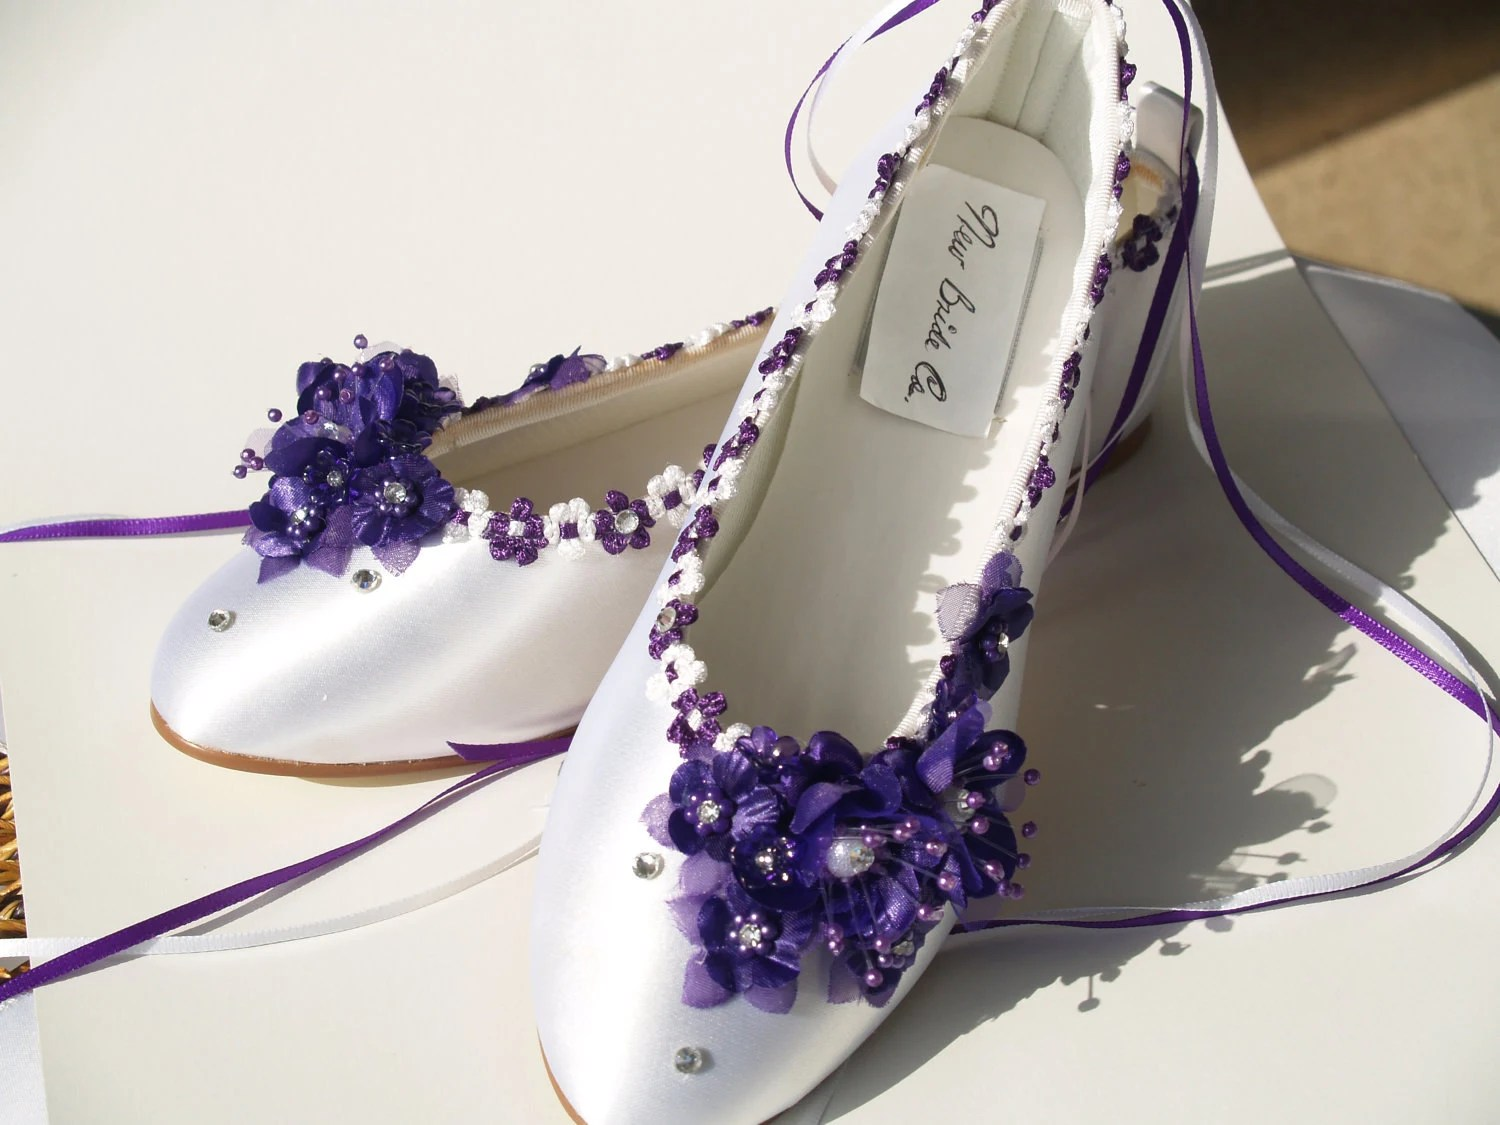 silk wedding shoes wedding slippers Wedding Flats Purple silk flowers pearls crystals and ankle ribbons Lace Up Ribbon Satin Ballet Style Slippers Closed Toe Deep Purple